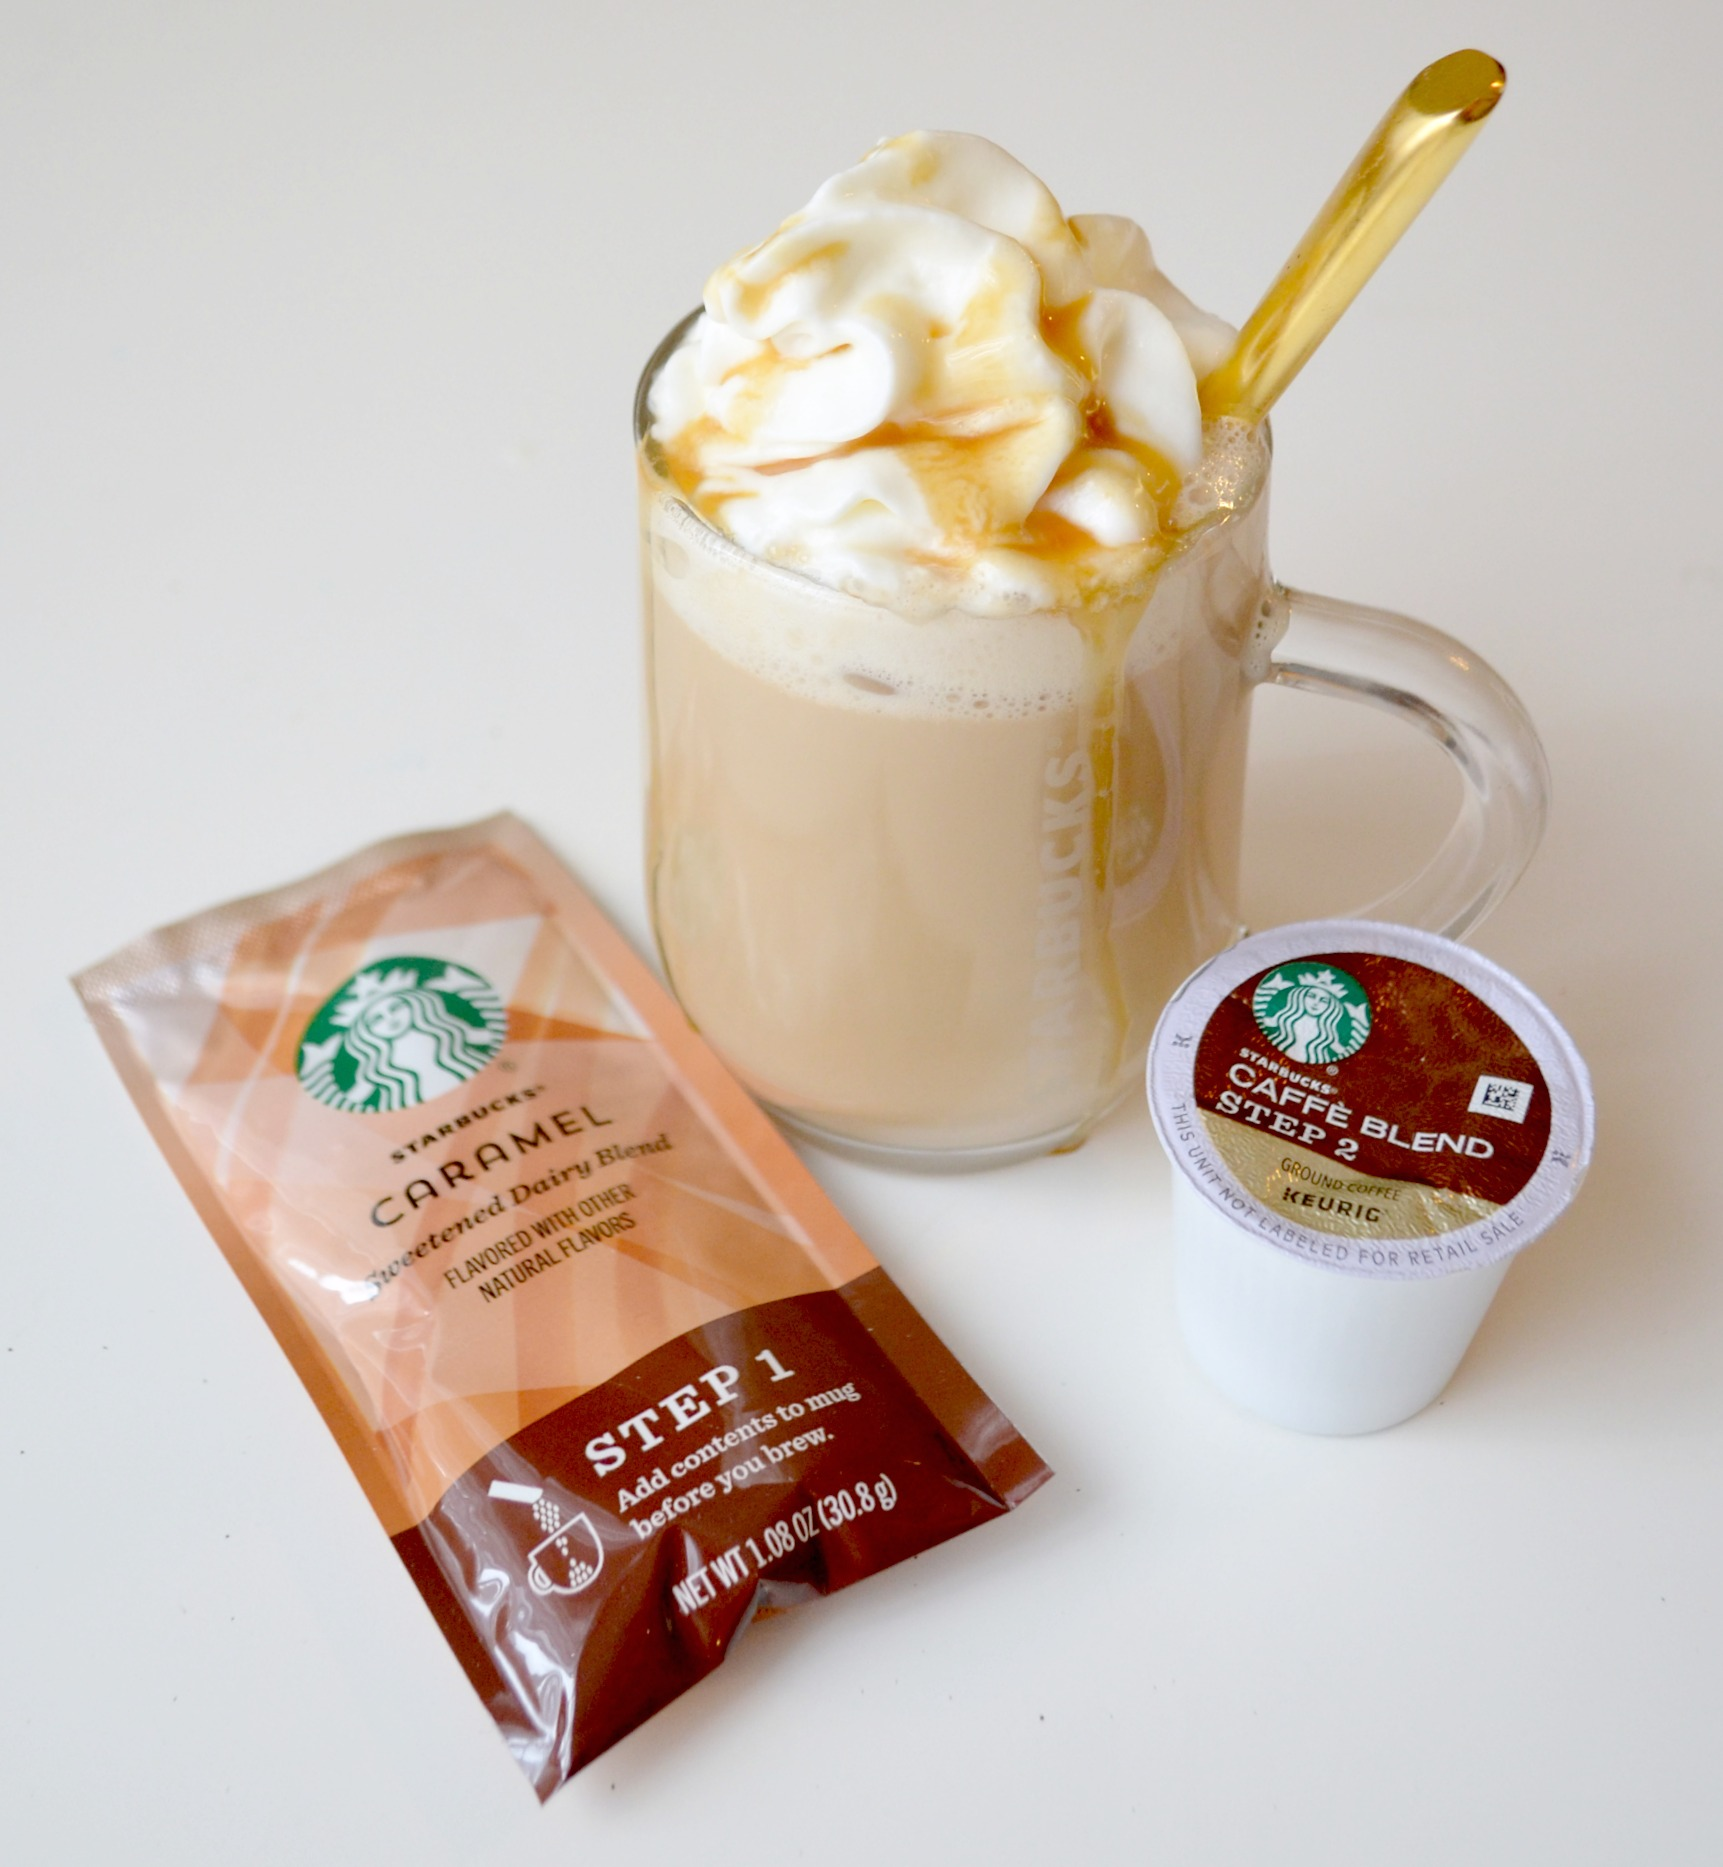 starbucks caff latte kcup pods are made from milk with no artificial flavors and they come in 3 delicious starbucks signature flavors caramel - Starbucks Keurig Cups